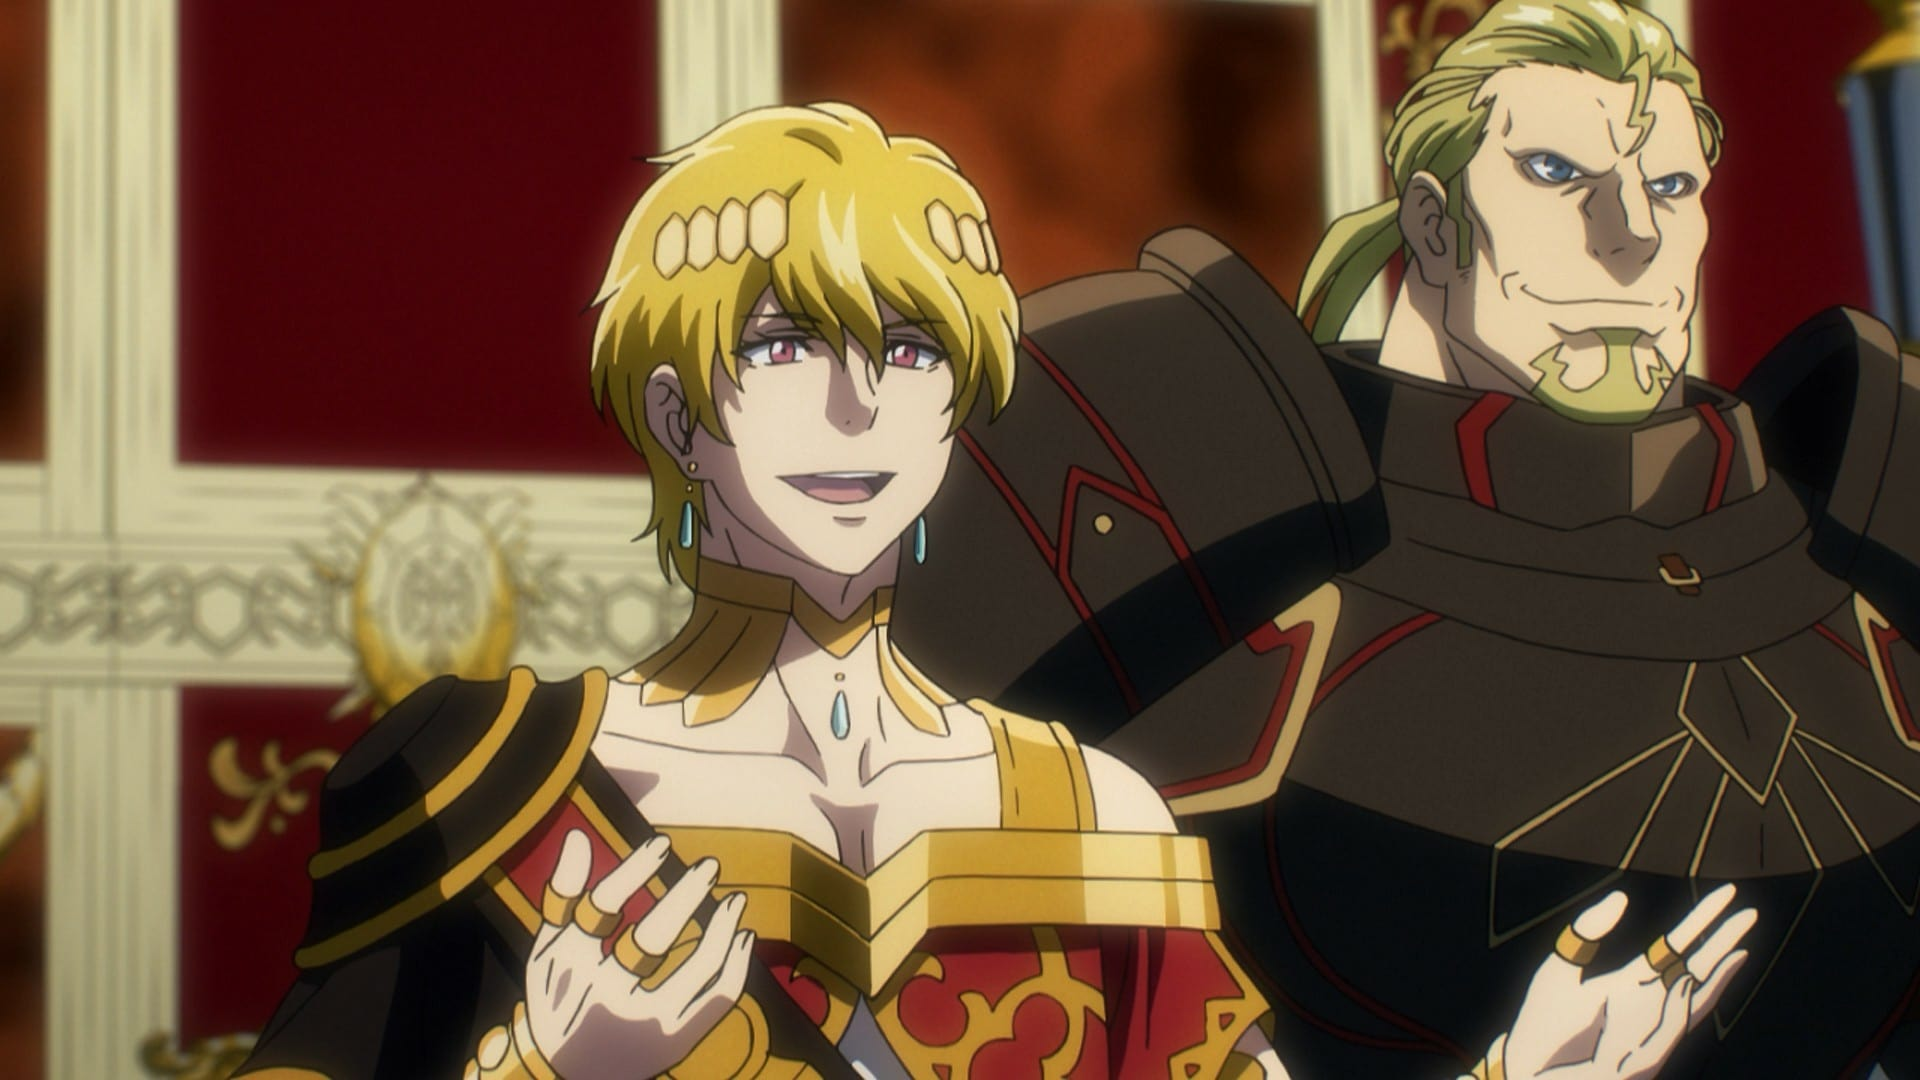 Overlord Season 4 Release Date Speculations